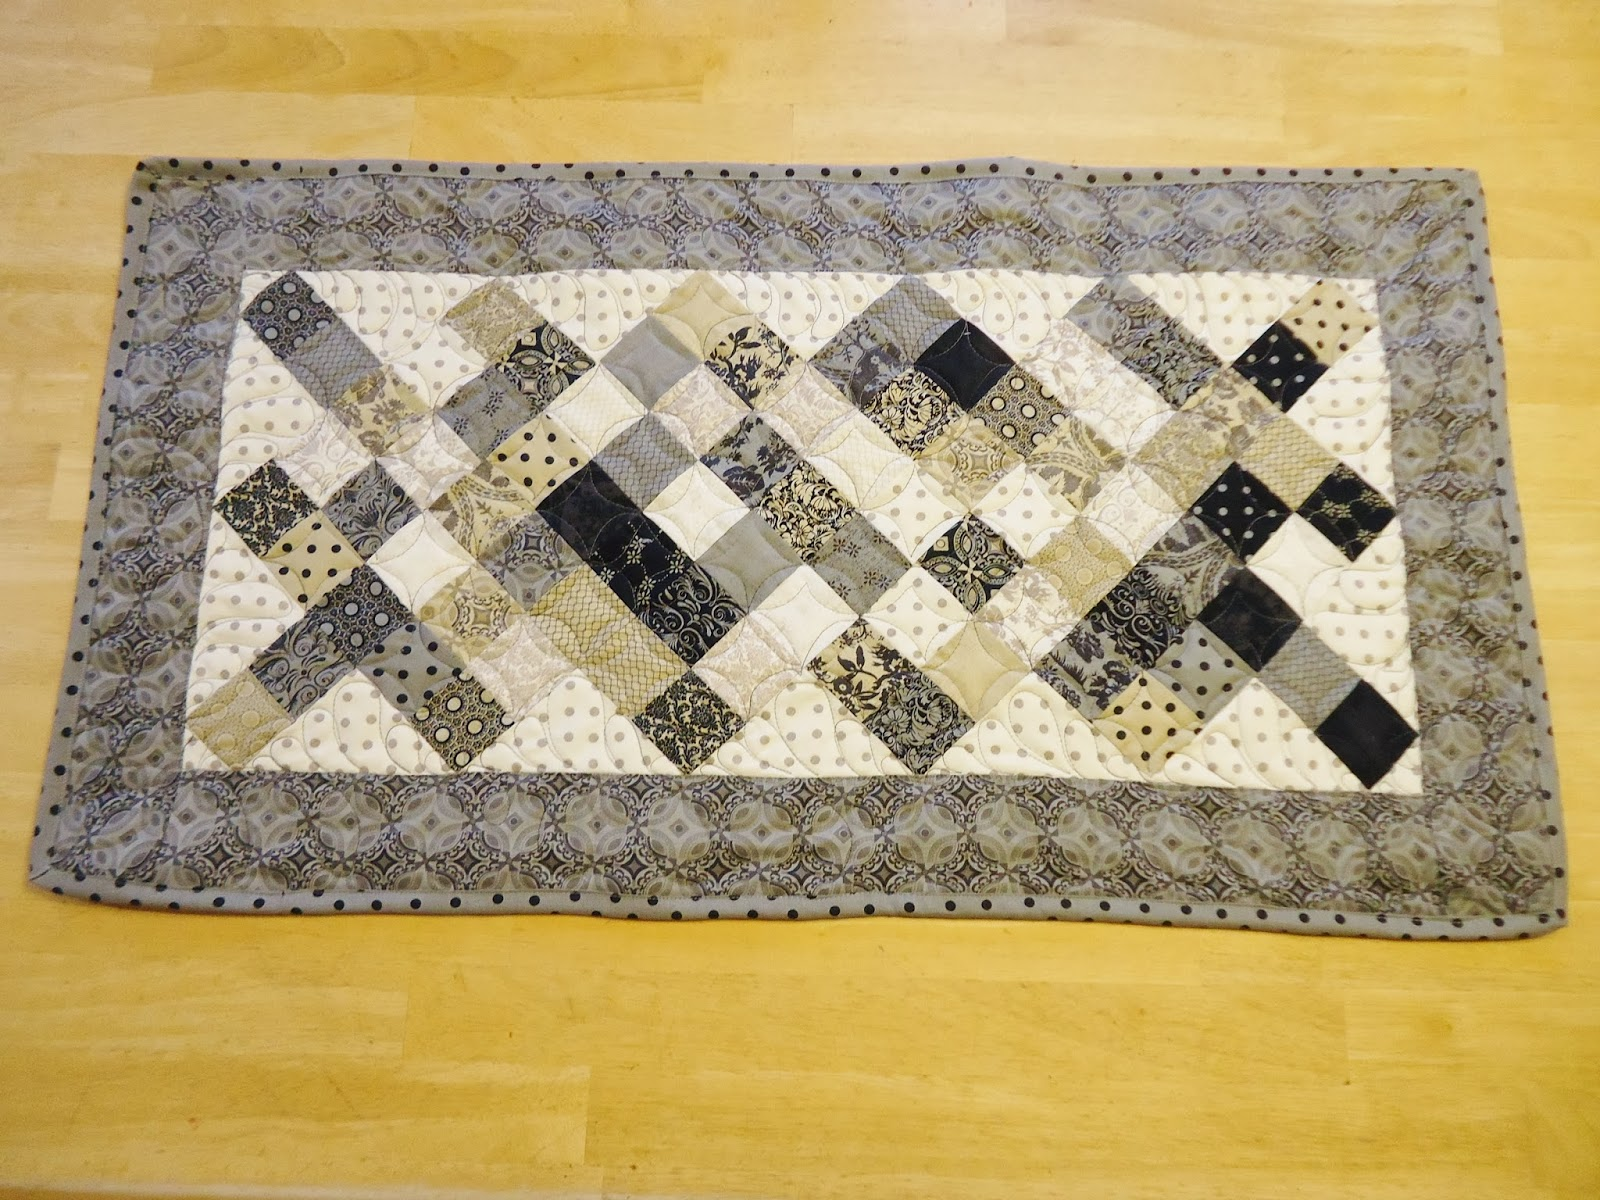 patterns katie pattern designs runner quilted easy simple click quilt nines hennagir table